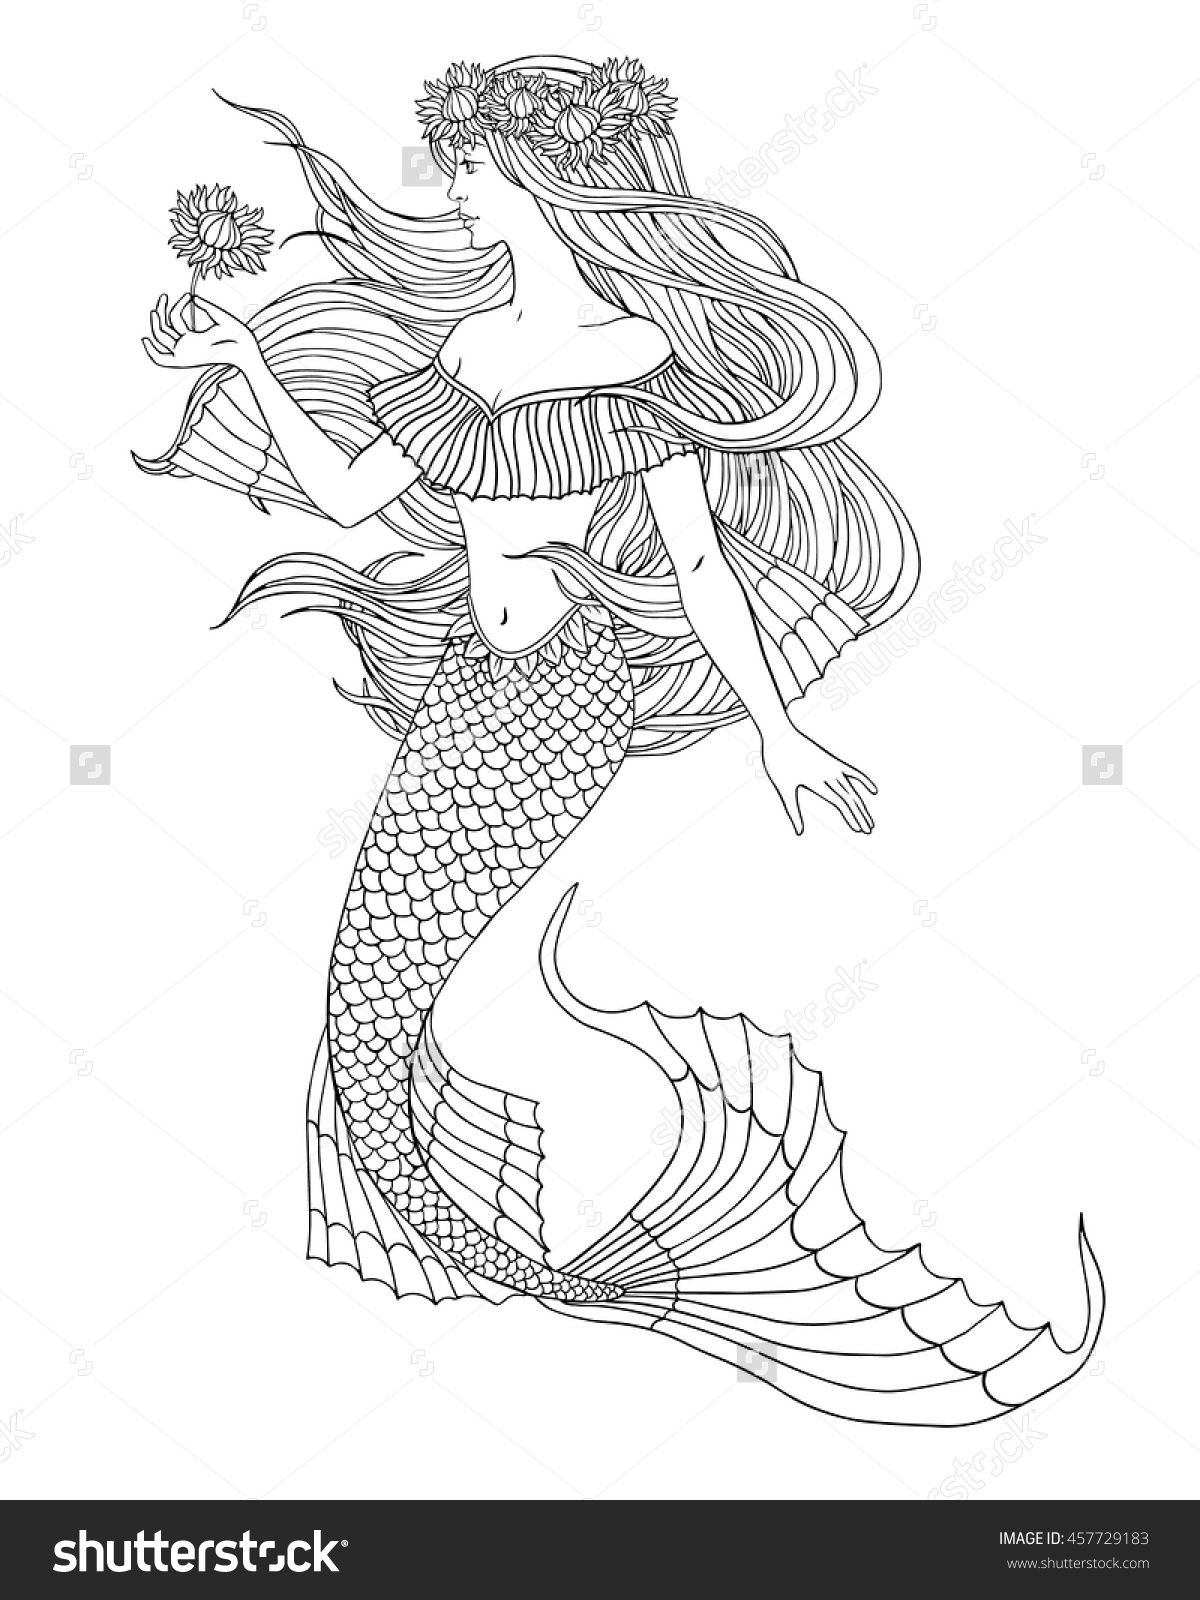 mermaid holding a flower illustration for coloring